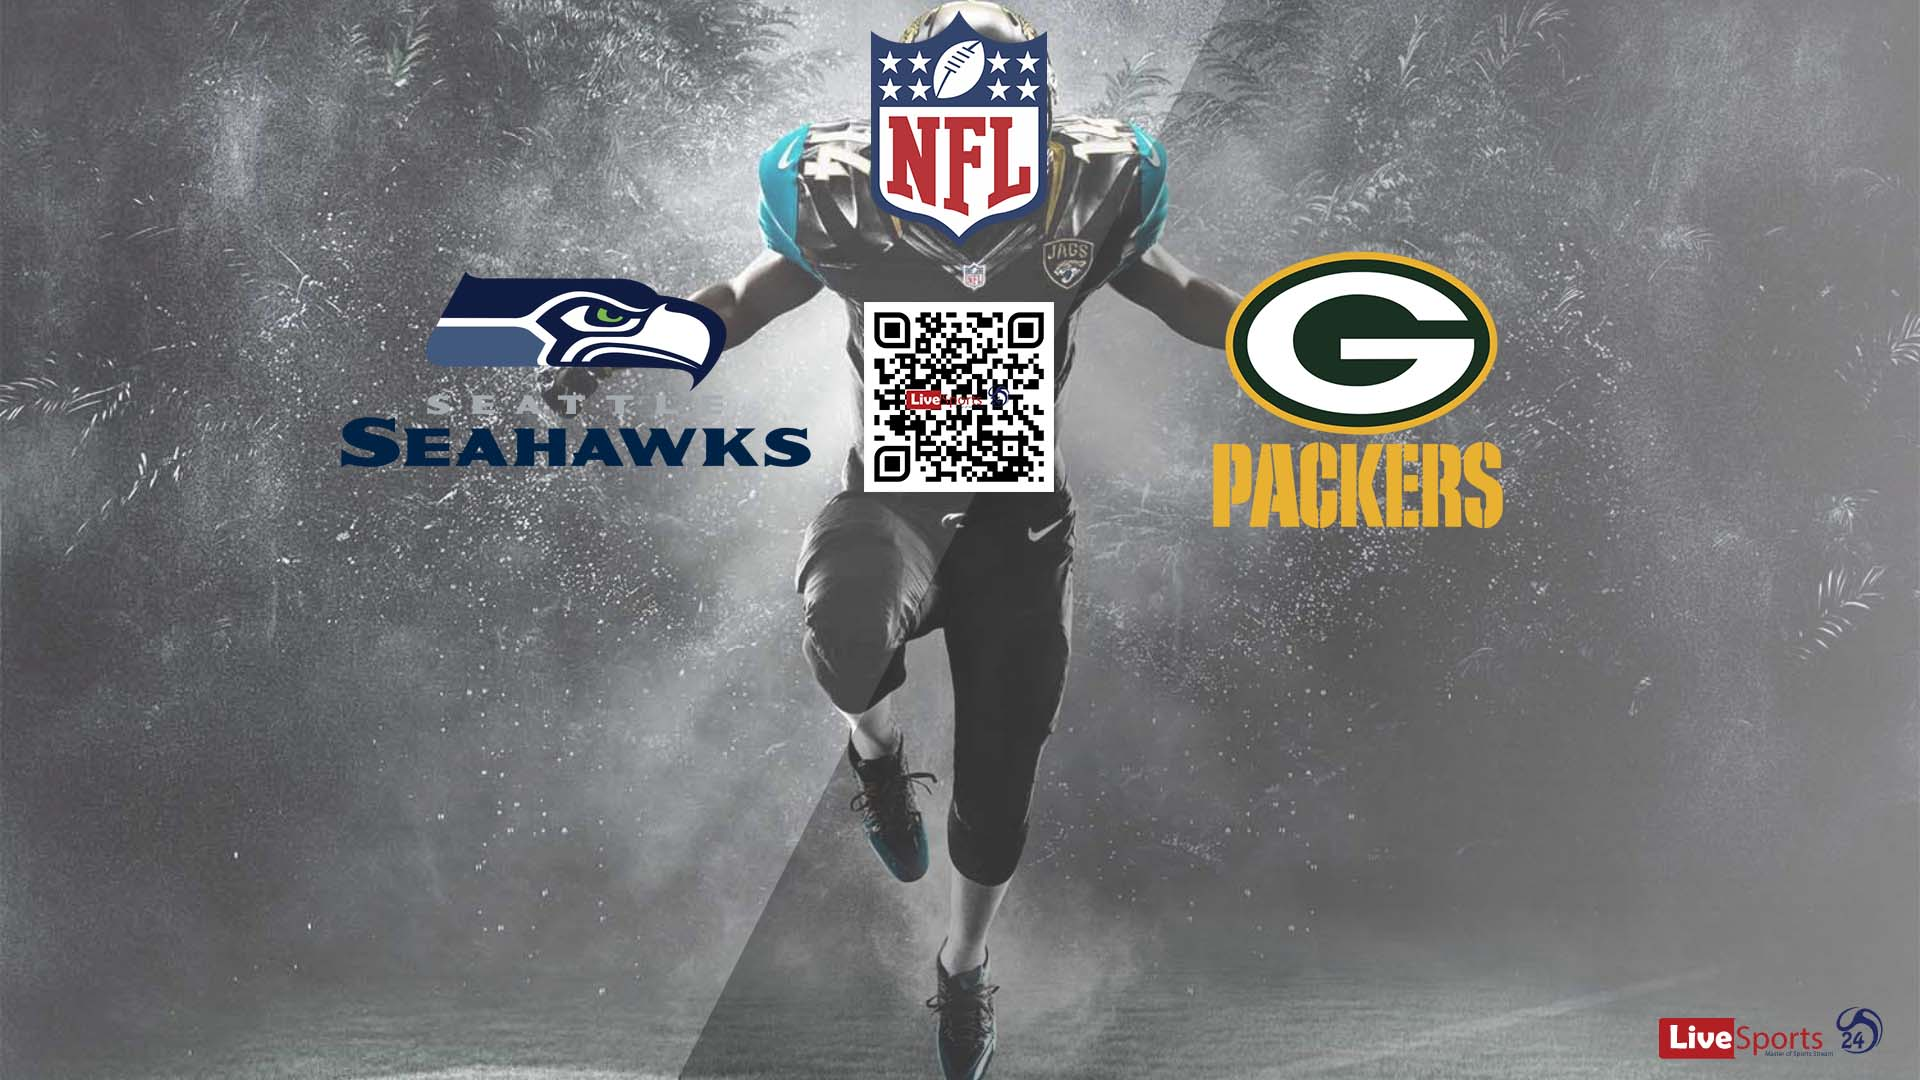 Seattle Seahawks vs Green Bay Packers Live Stream